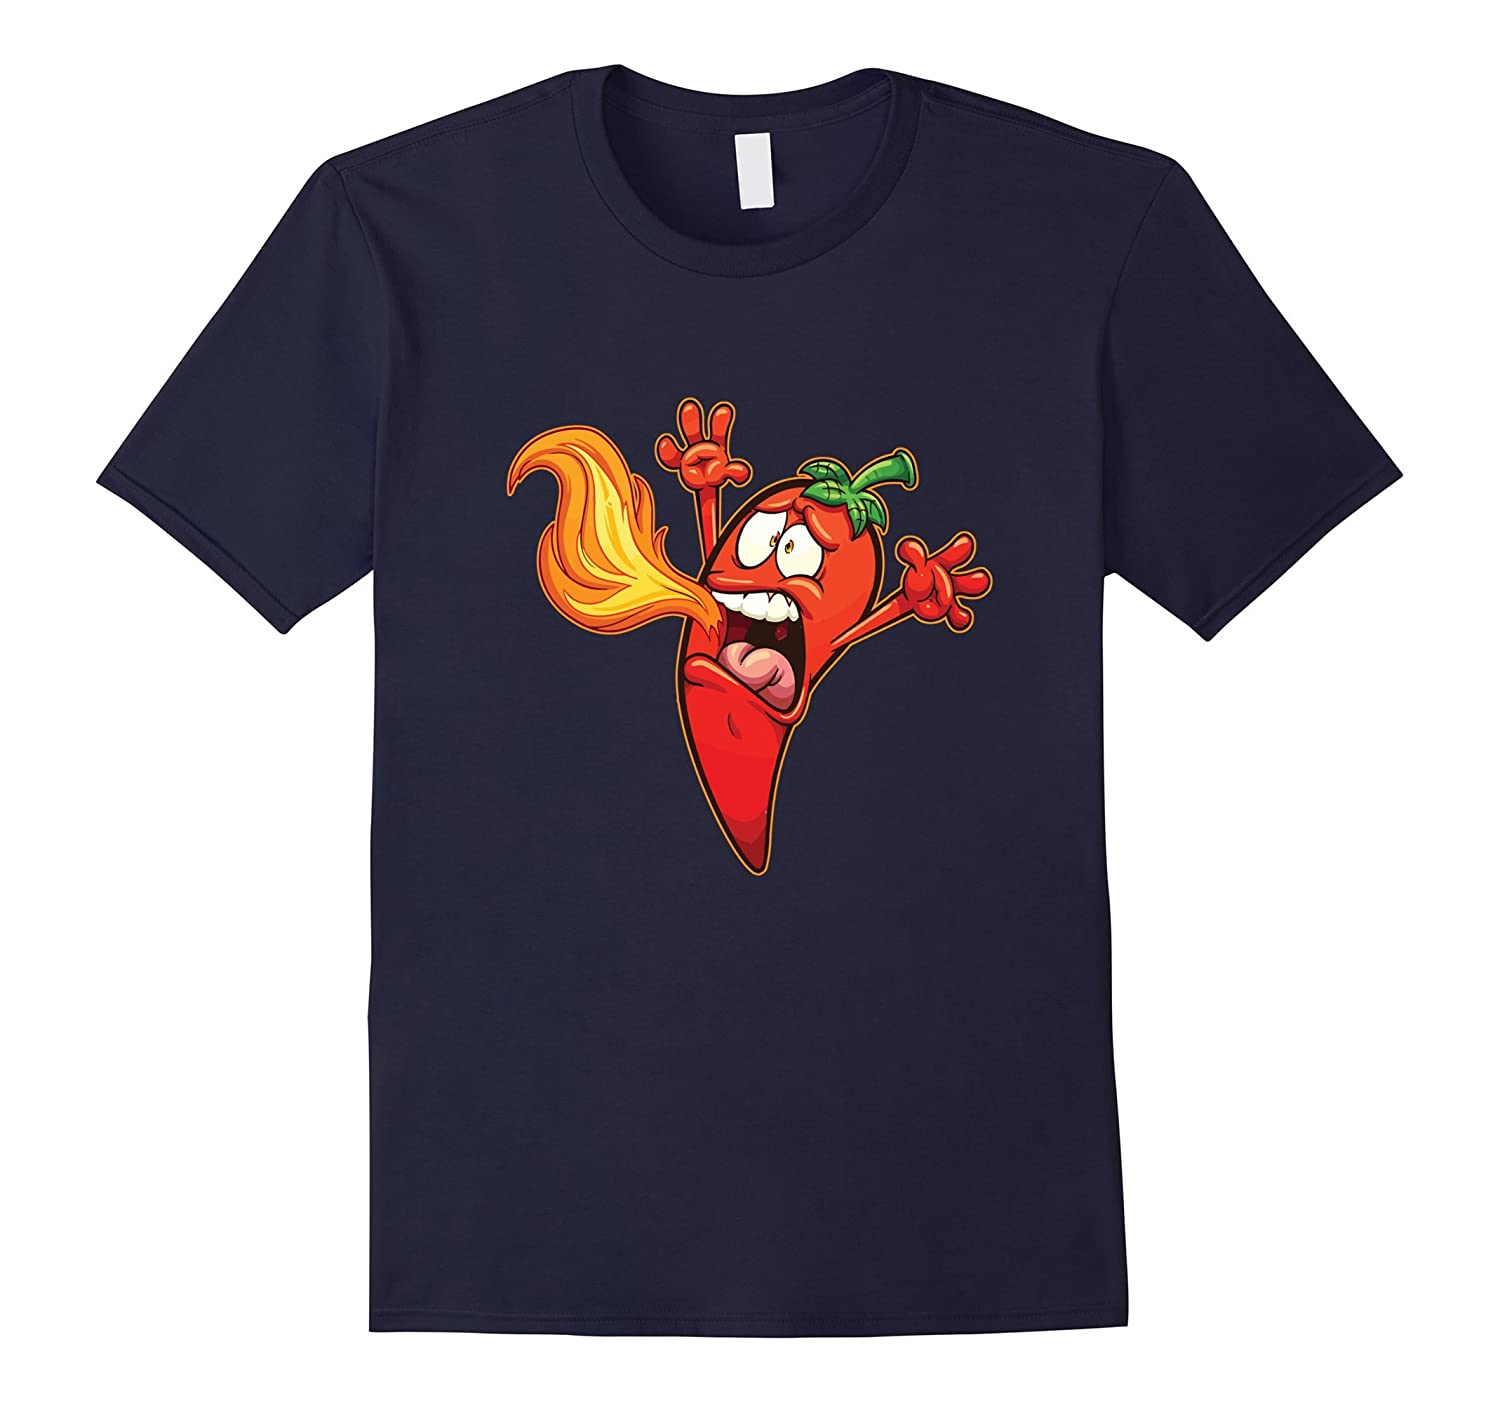 Emoji Shirt Funny Chilli Pepper Hot Sauce Food Lover-T-Shirt